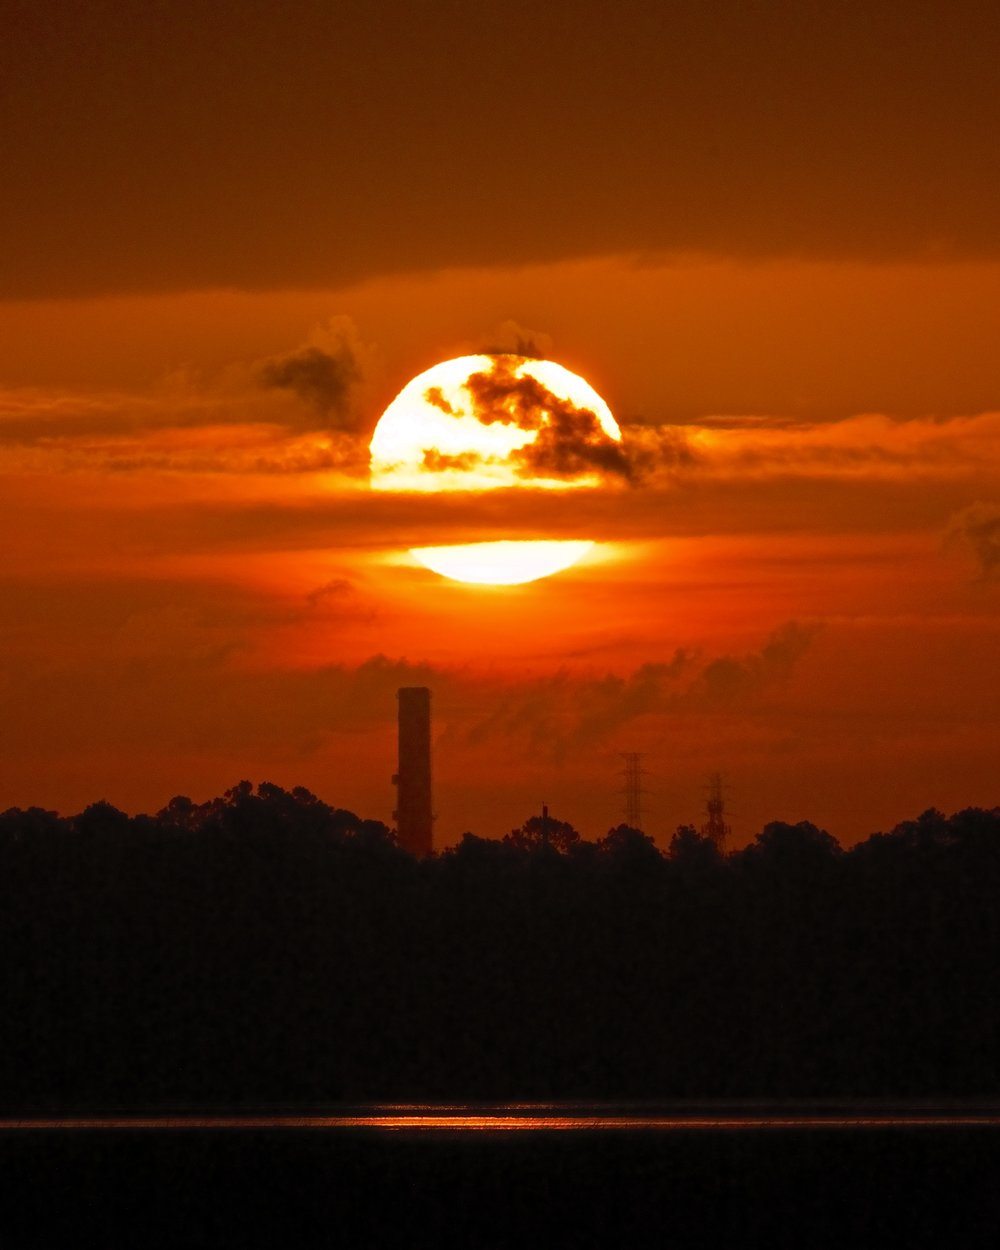 The sun burns through a layer of clouds like a molten fireball.